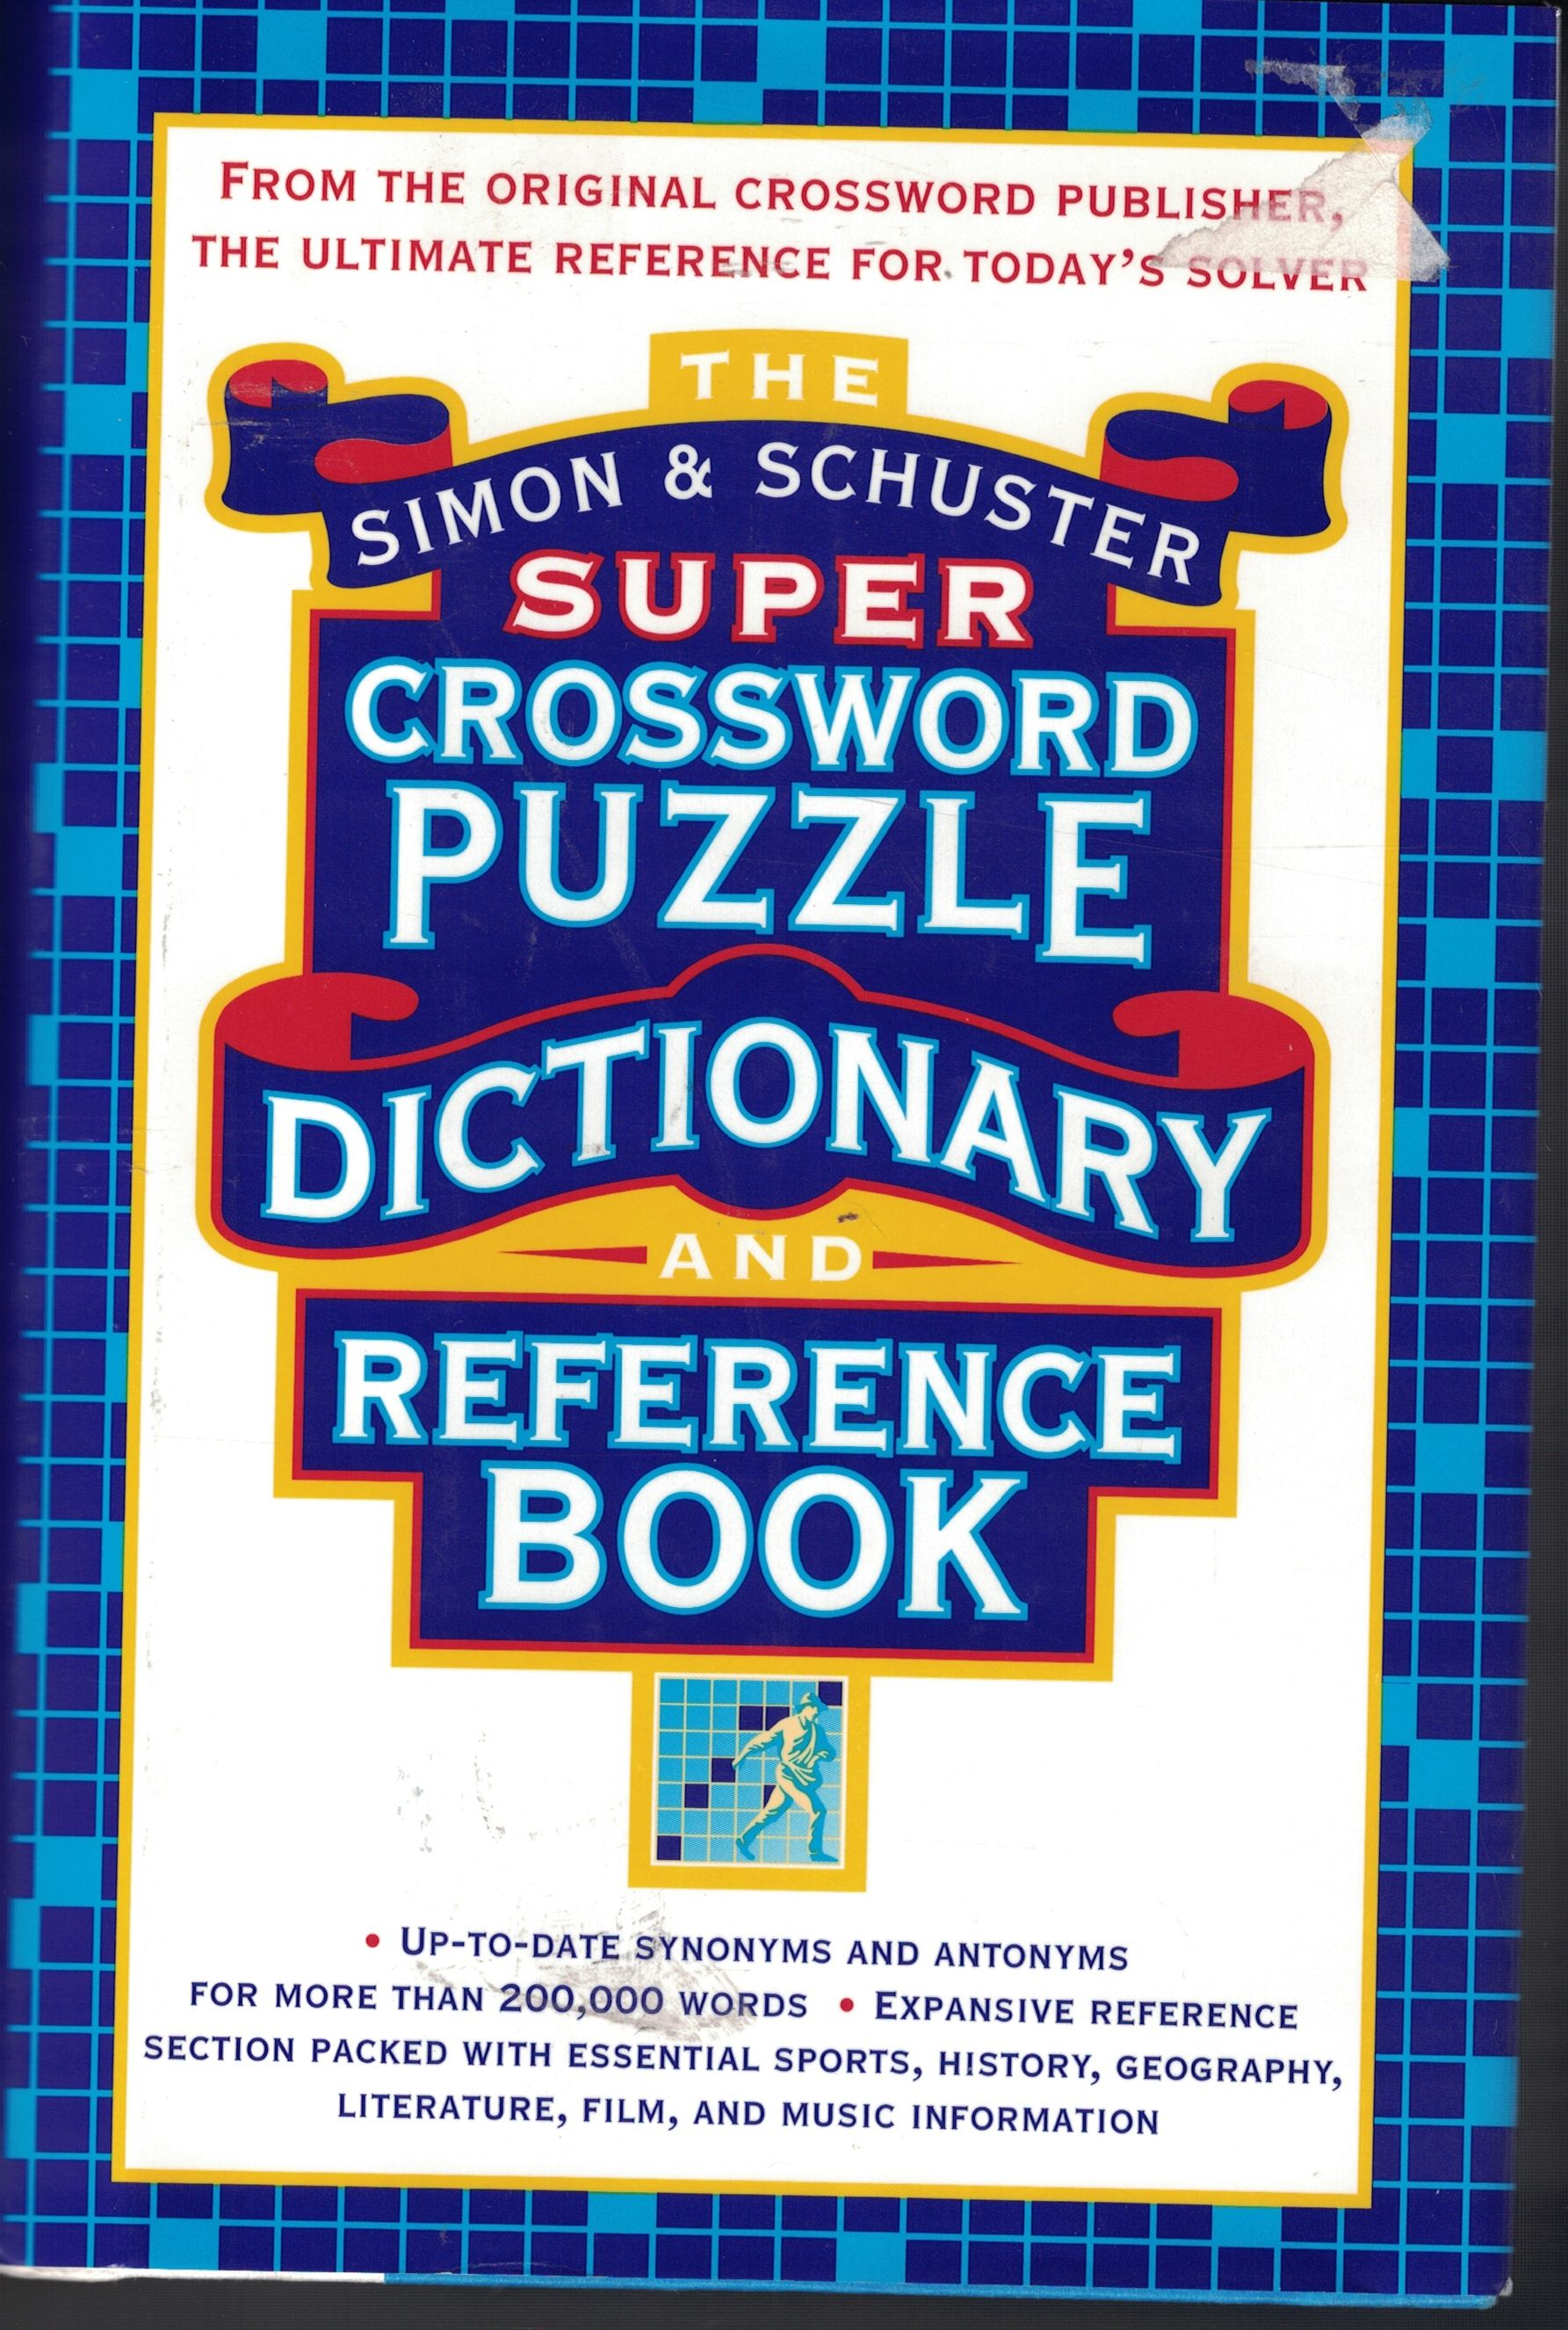 Super Crossword Puzzle Dictionary And Reference Book by Simon and Schuster,    Hardcover,   20th Printing,   20,   from Ye Old Bookworm SKU 20